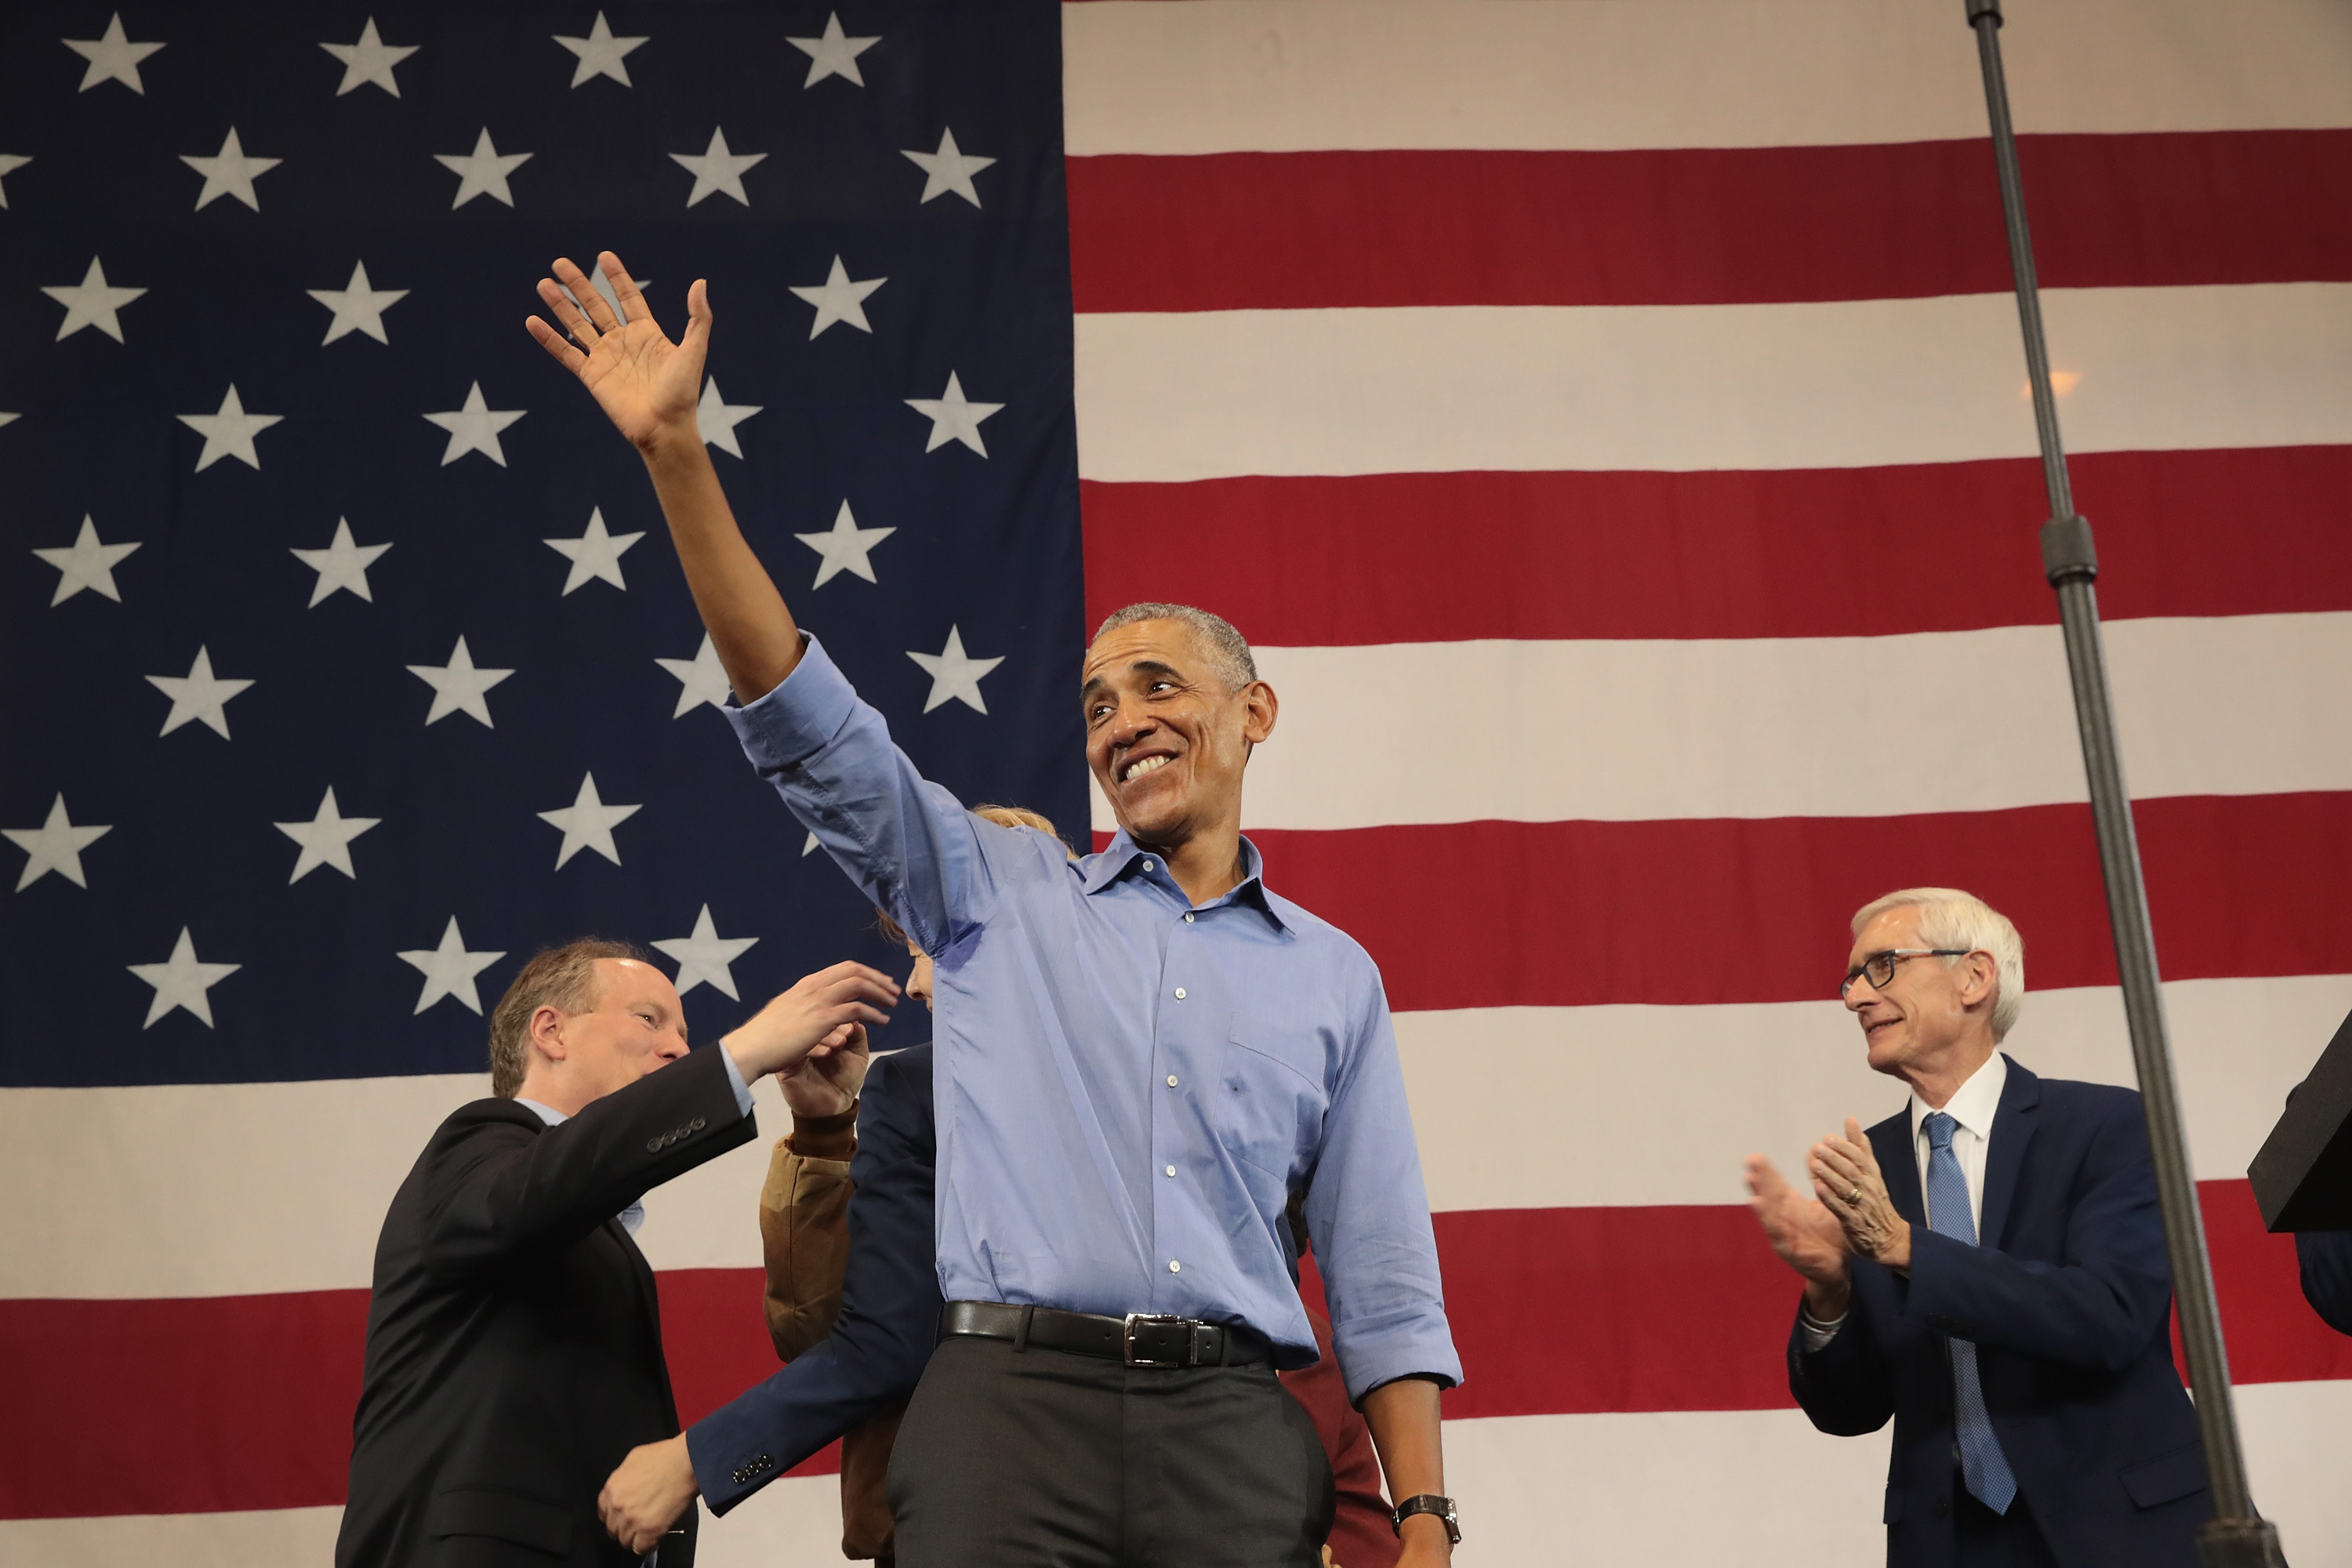 Former President Barack Obama campaigns for Wisconsin Democratic candidates including Tony Evers (far right), Democratic candidate for governor of Wisconsin, during a rally at North Division High School on October 26, 2018 in Milwaukee, Wisconsin. Scott Olson/Getty Images